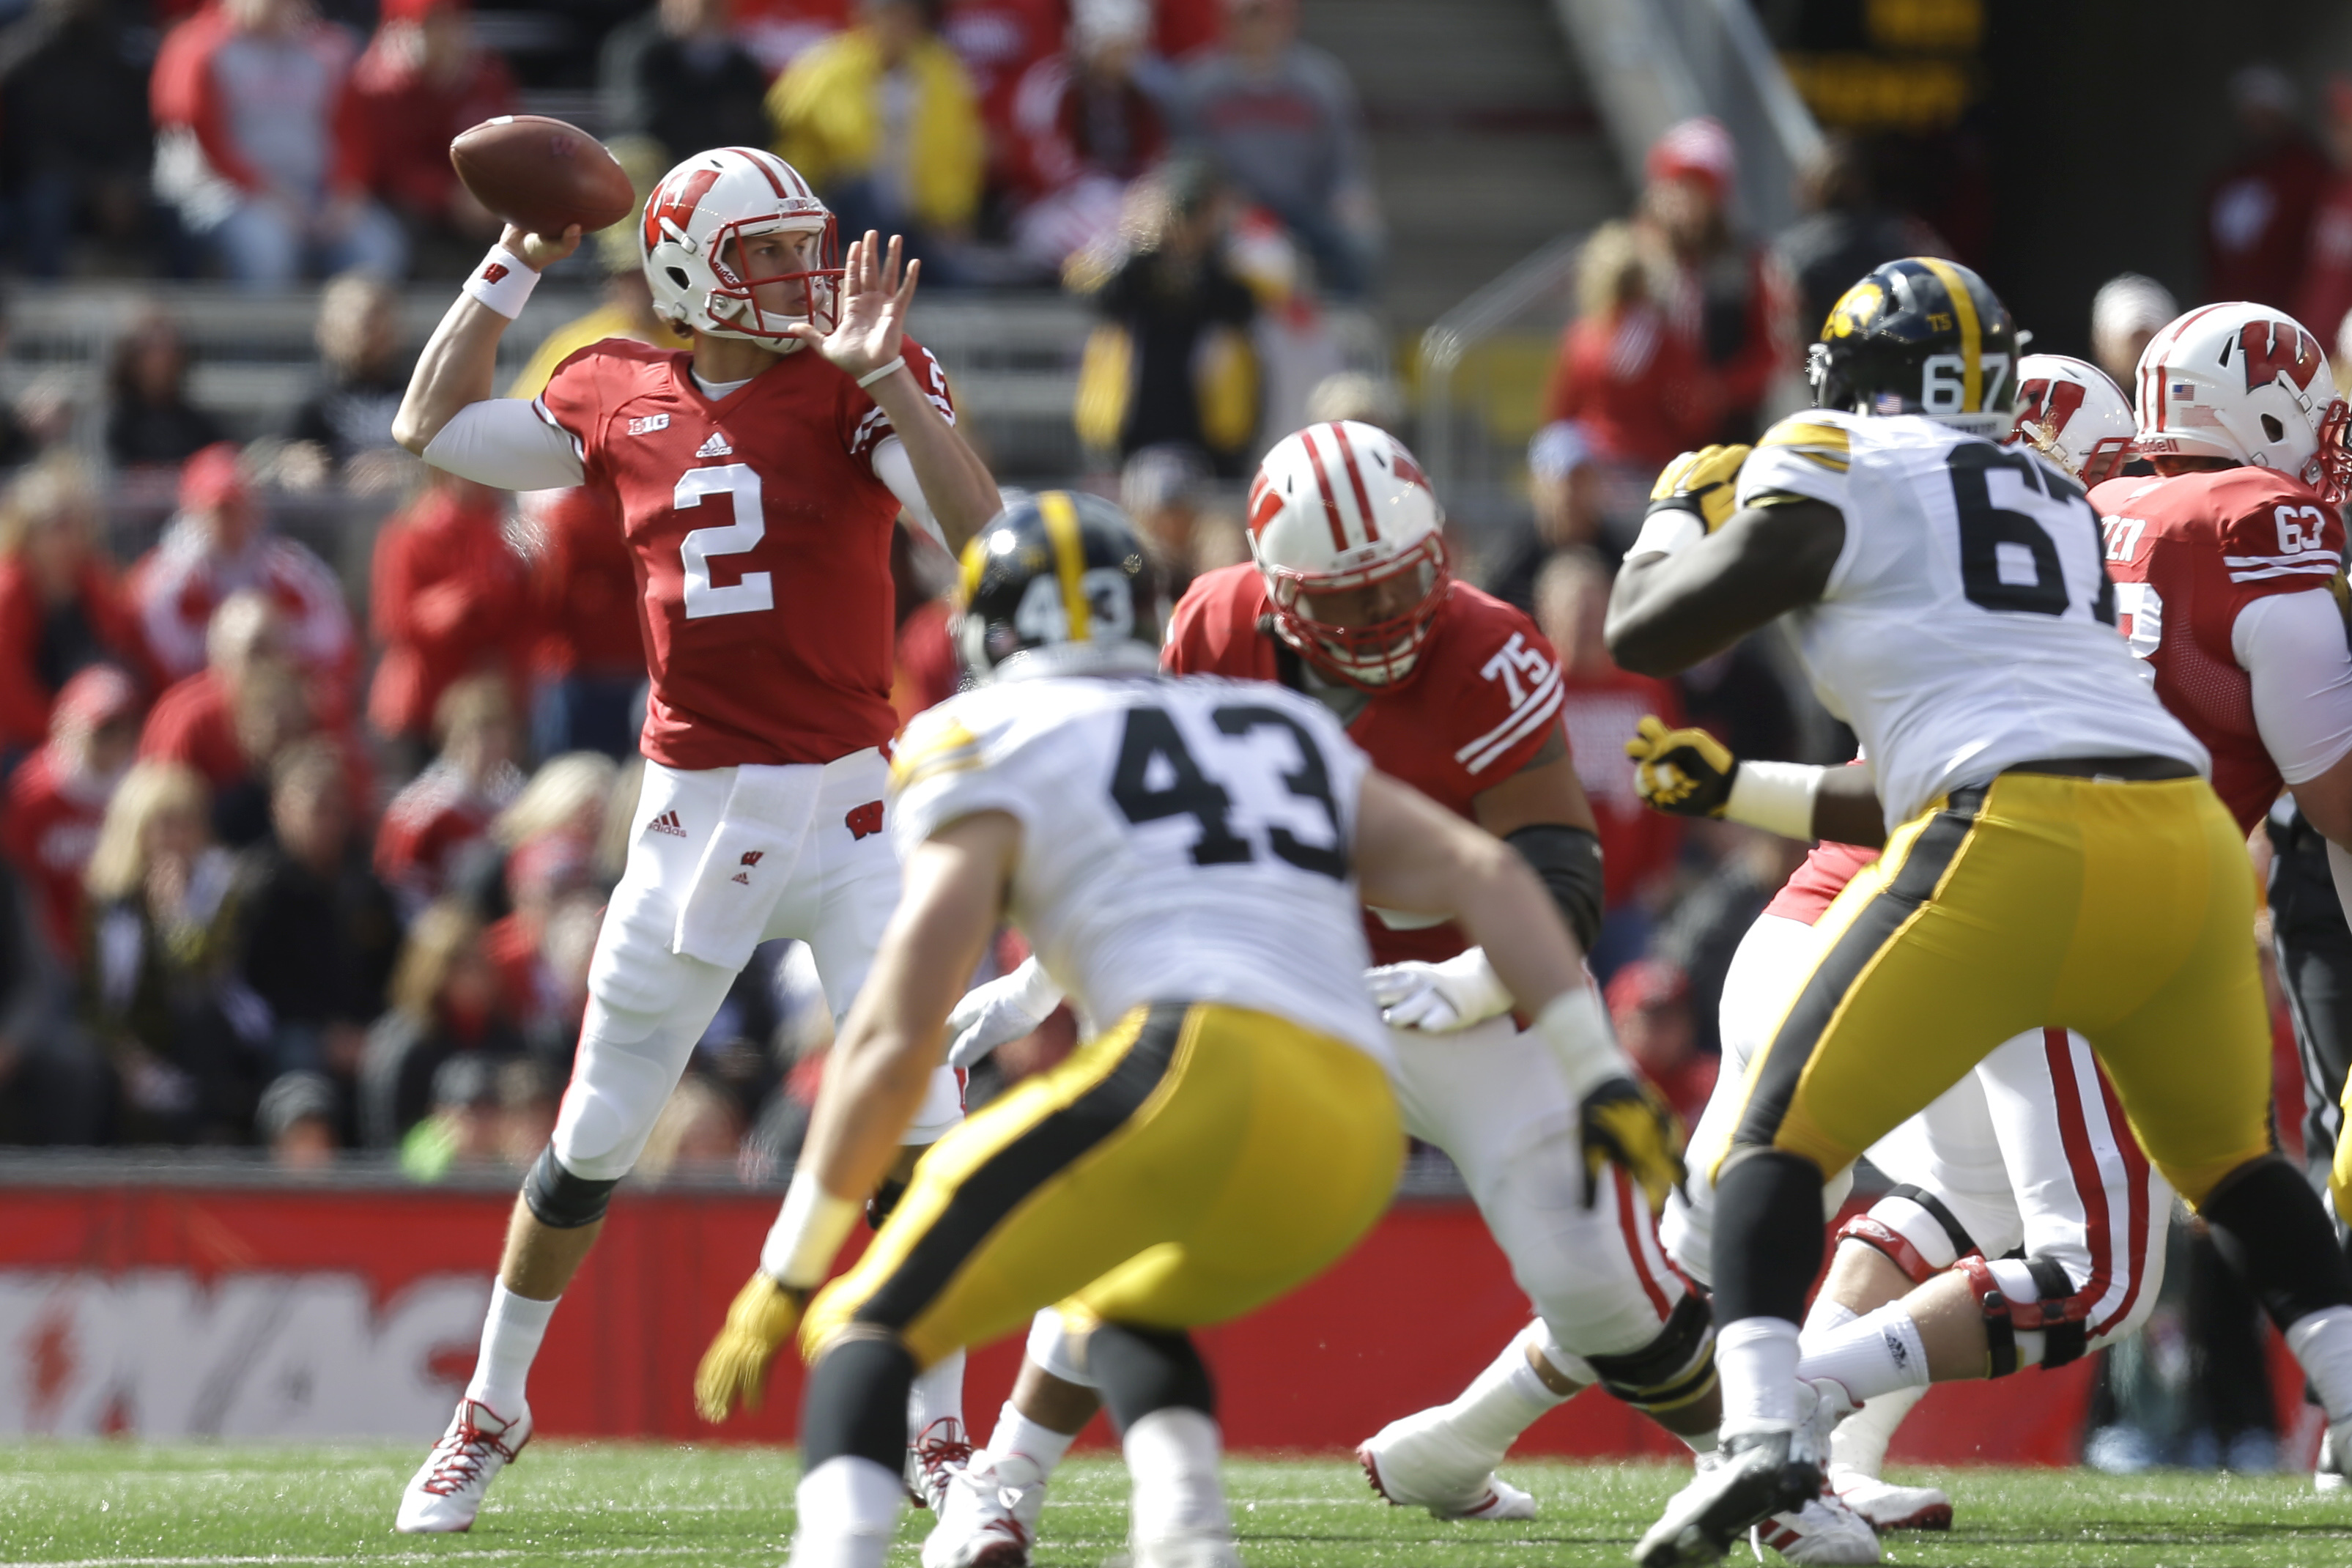 MADISON, WI - OCTOBER 03: Joel Stave #2 of the Wisconsin Badgers drops back and passes the football during the first half against the Iowa Hawkeyes at Camp Randall Stadium on October 03, 2015 in Madison, Wisconsin. (Photo by Mike McGinnis/Getty Images)